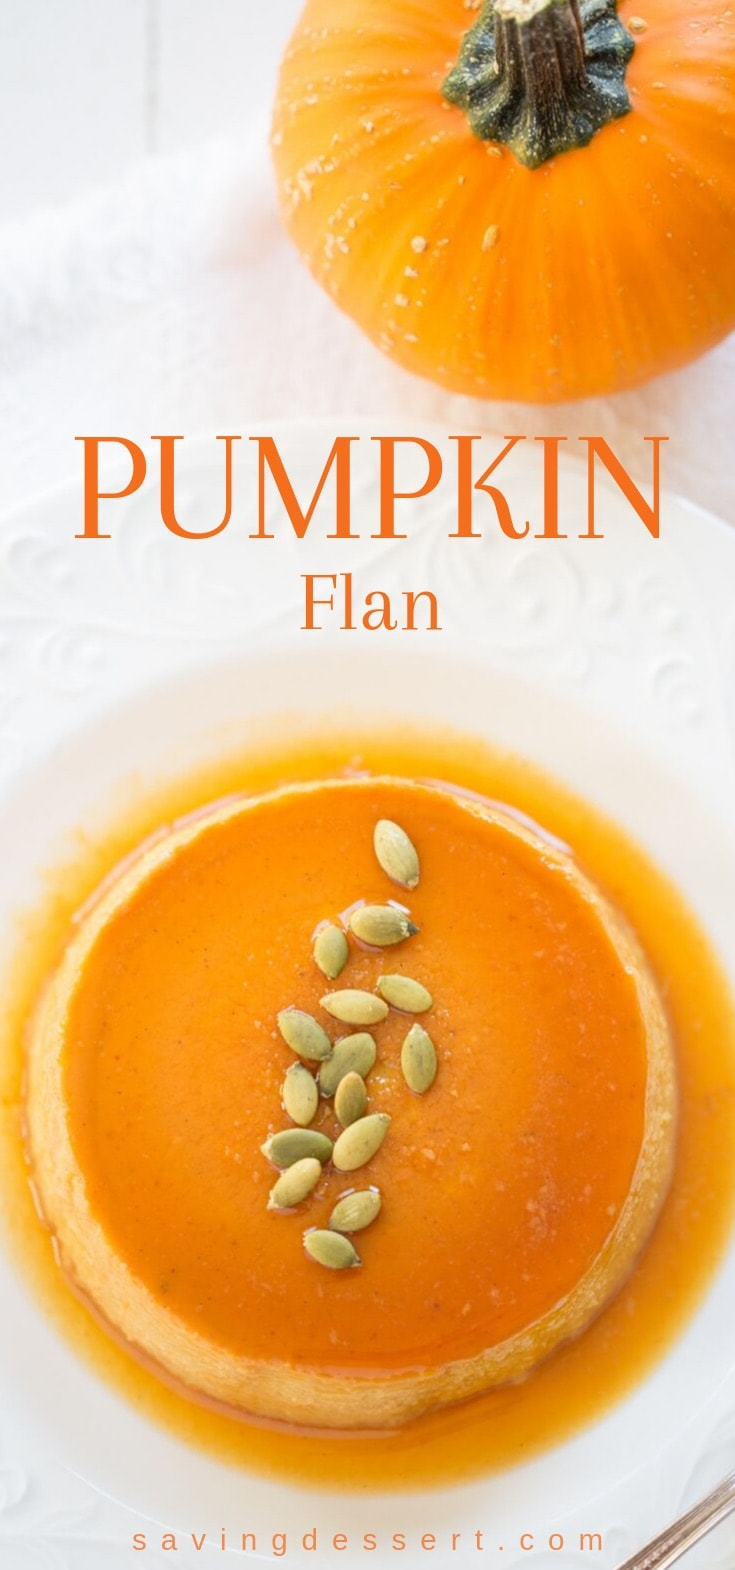 An overhead shot of a pumpkin flan with caramel garnished with pepitas